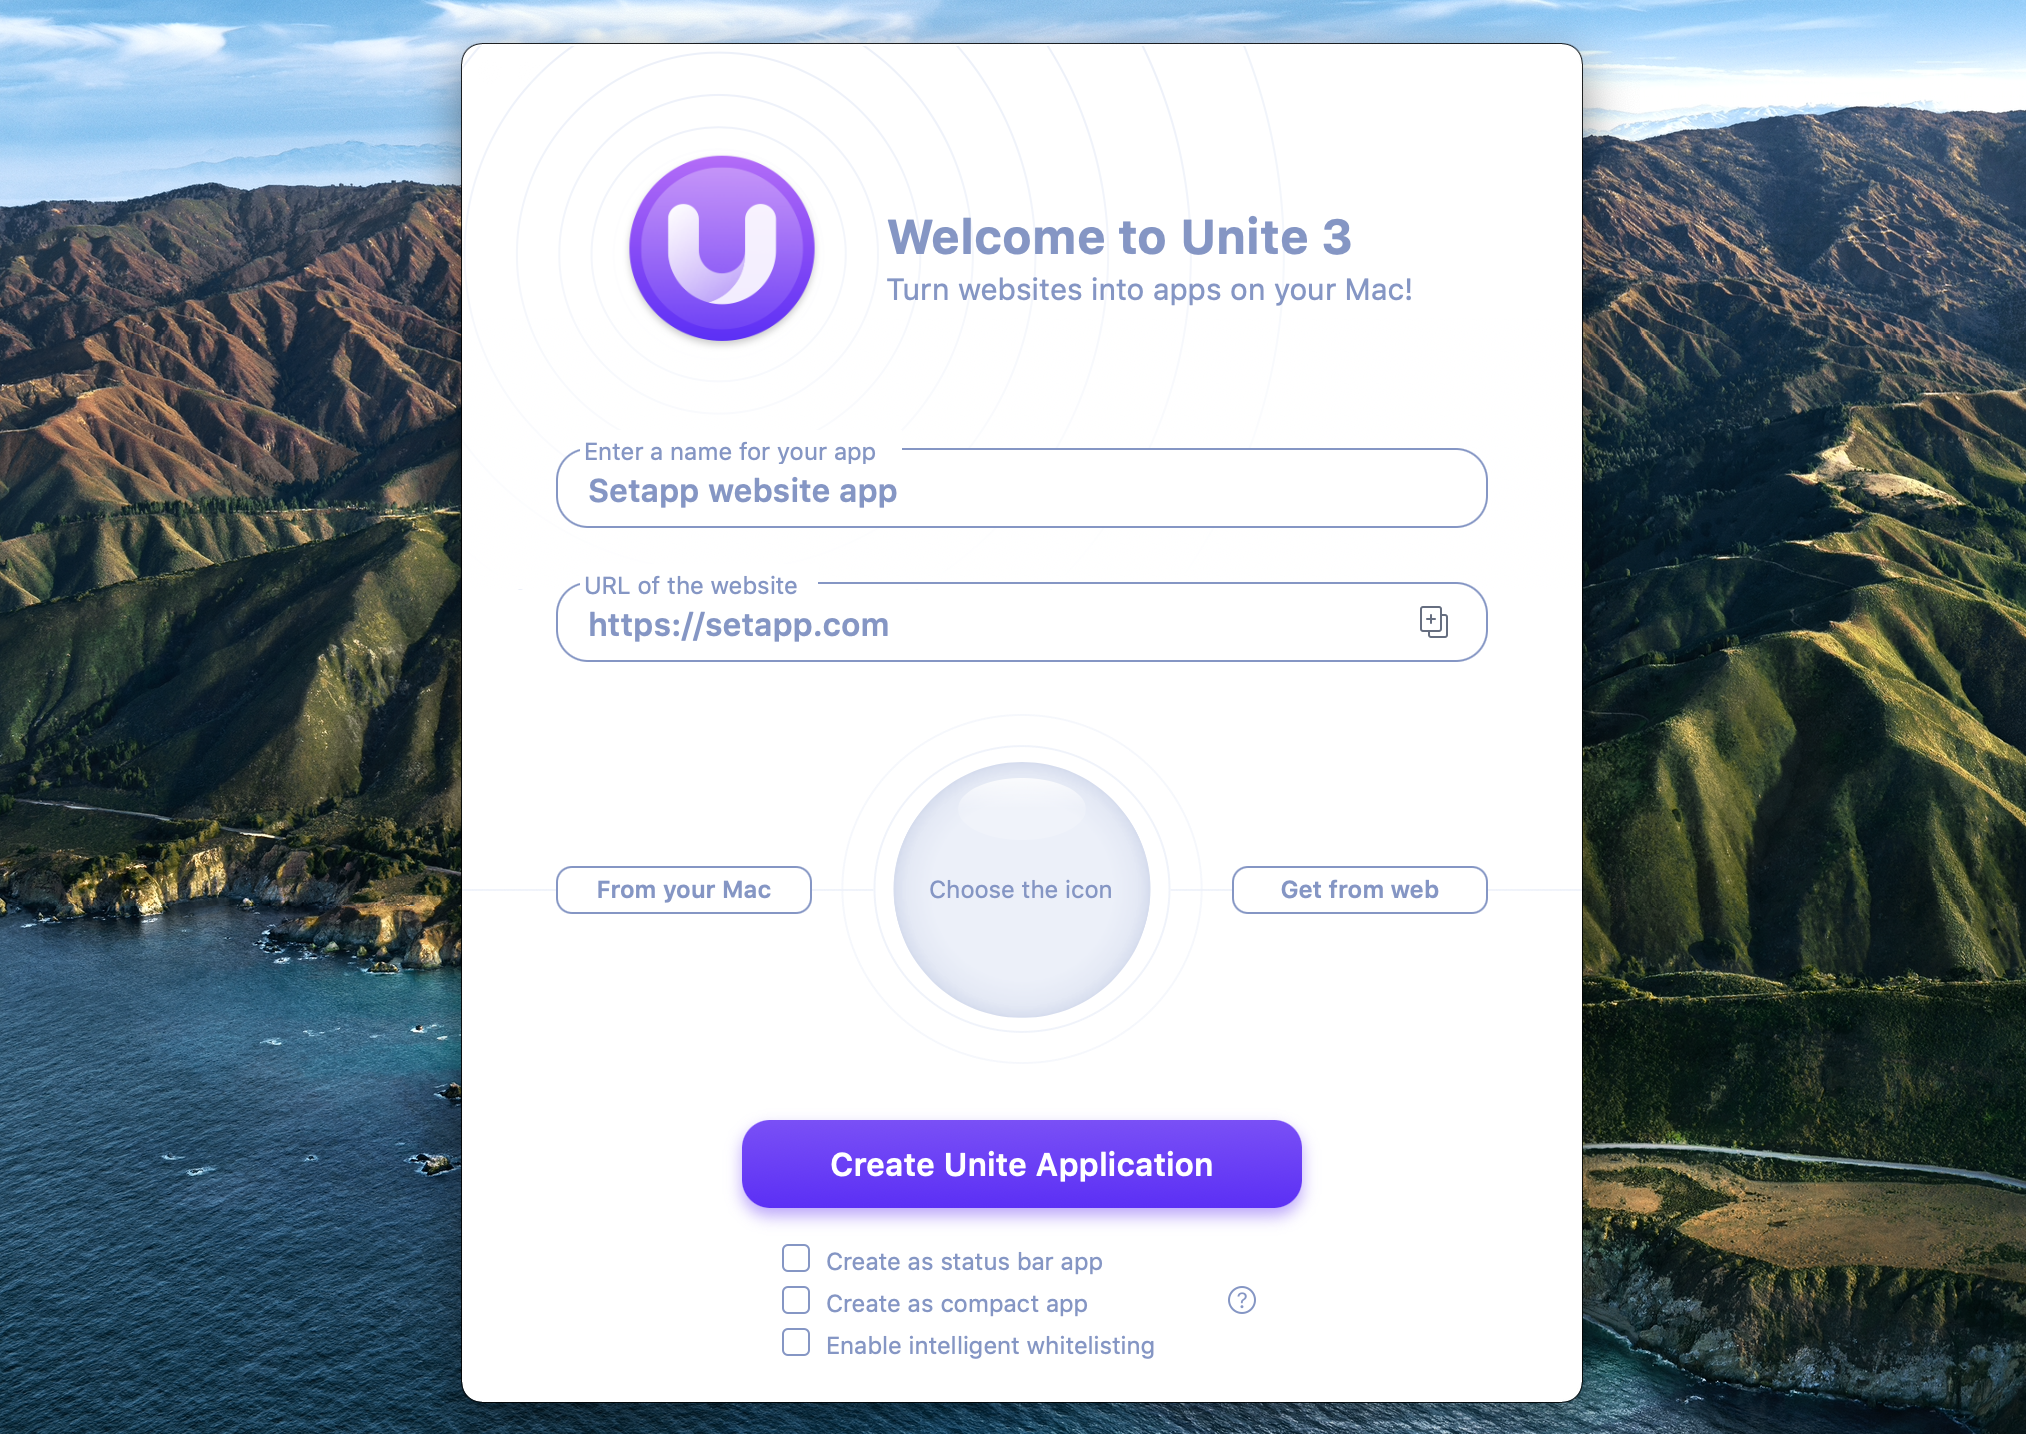 Create an app from a website with Unite 3